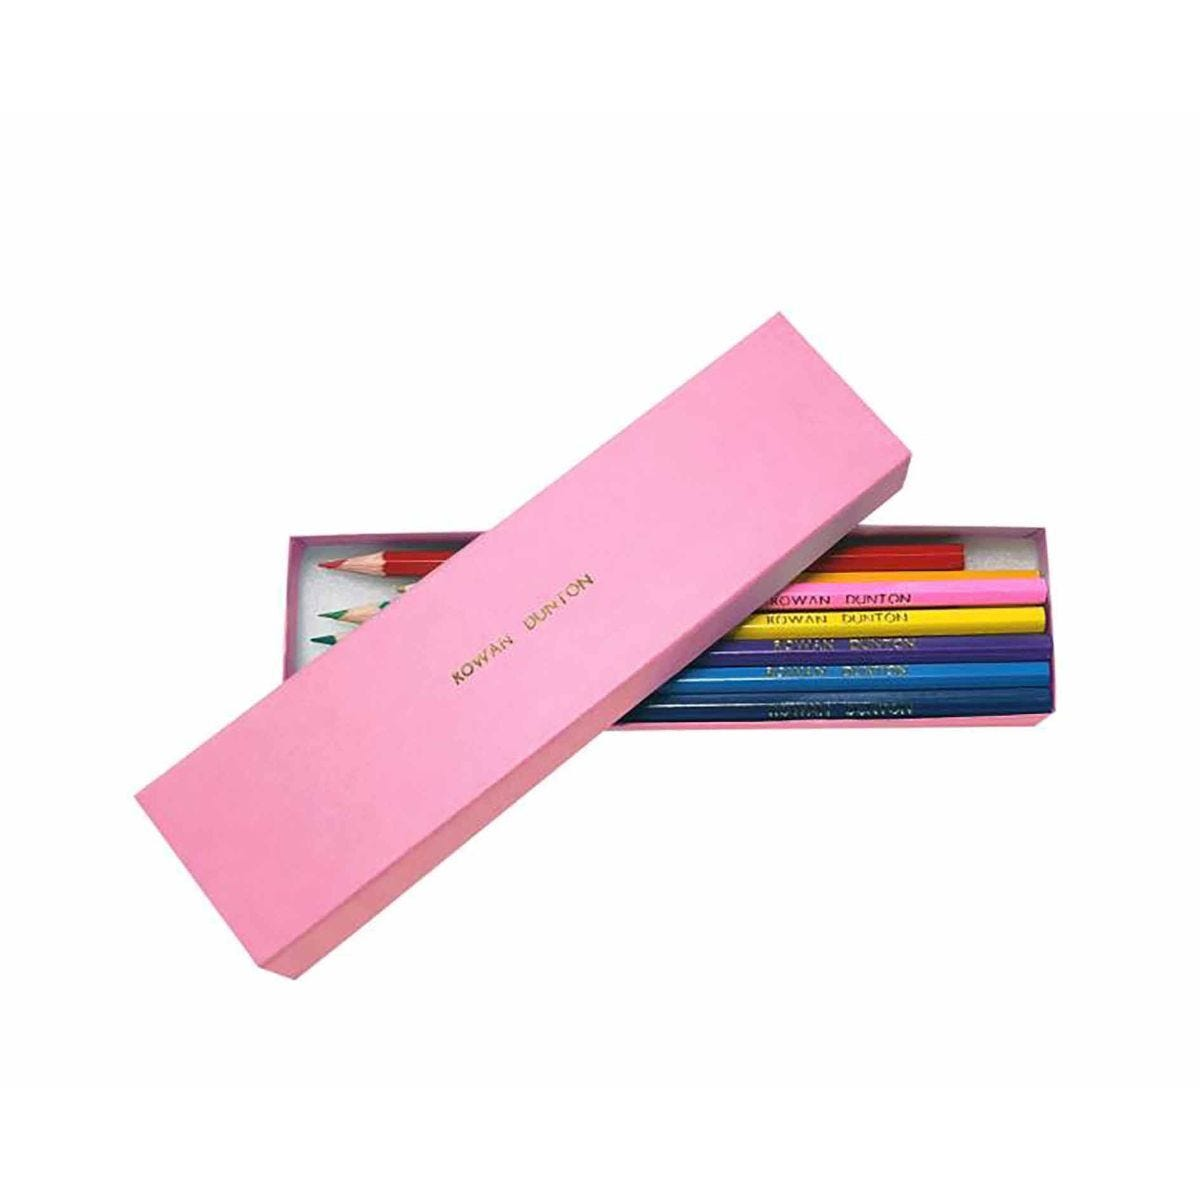 Personalised Lead Pencil Colouring Set Box of 12 Pink